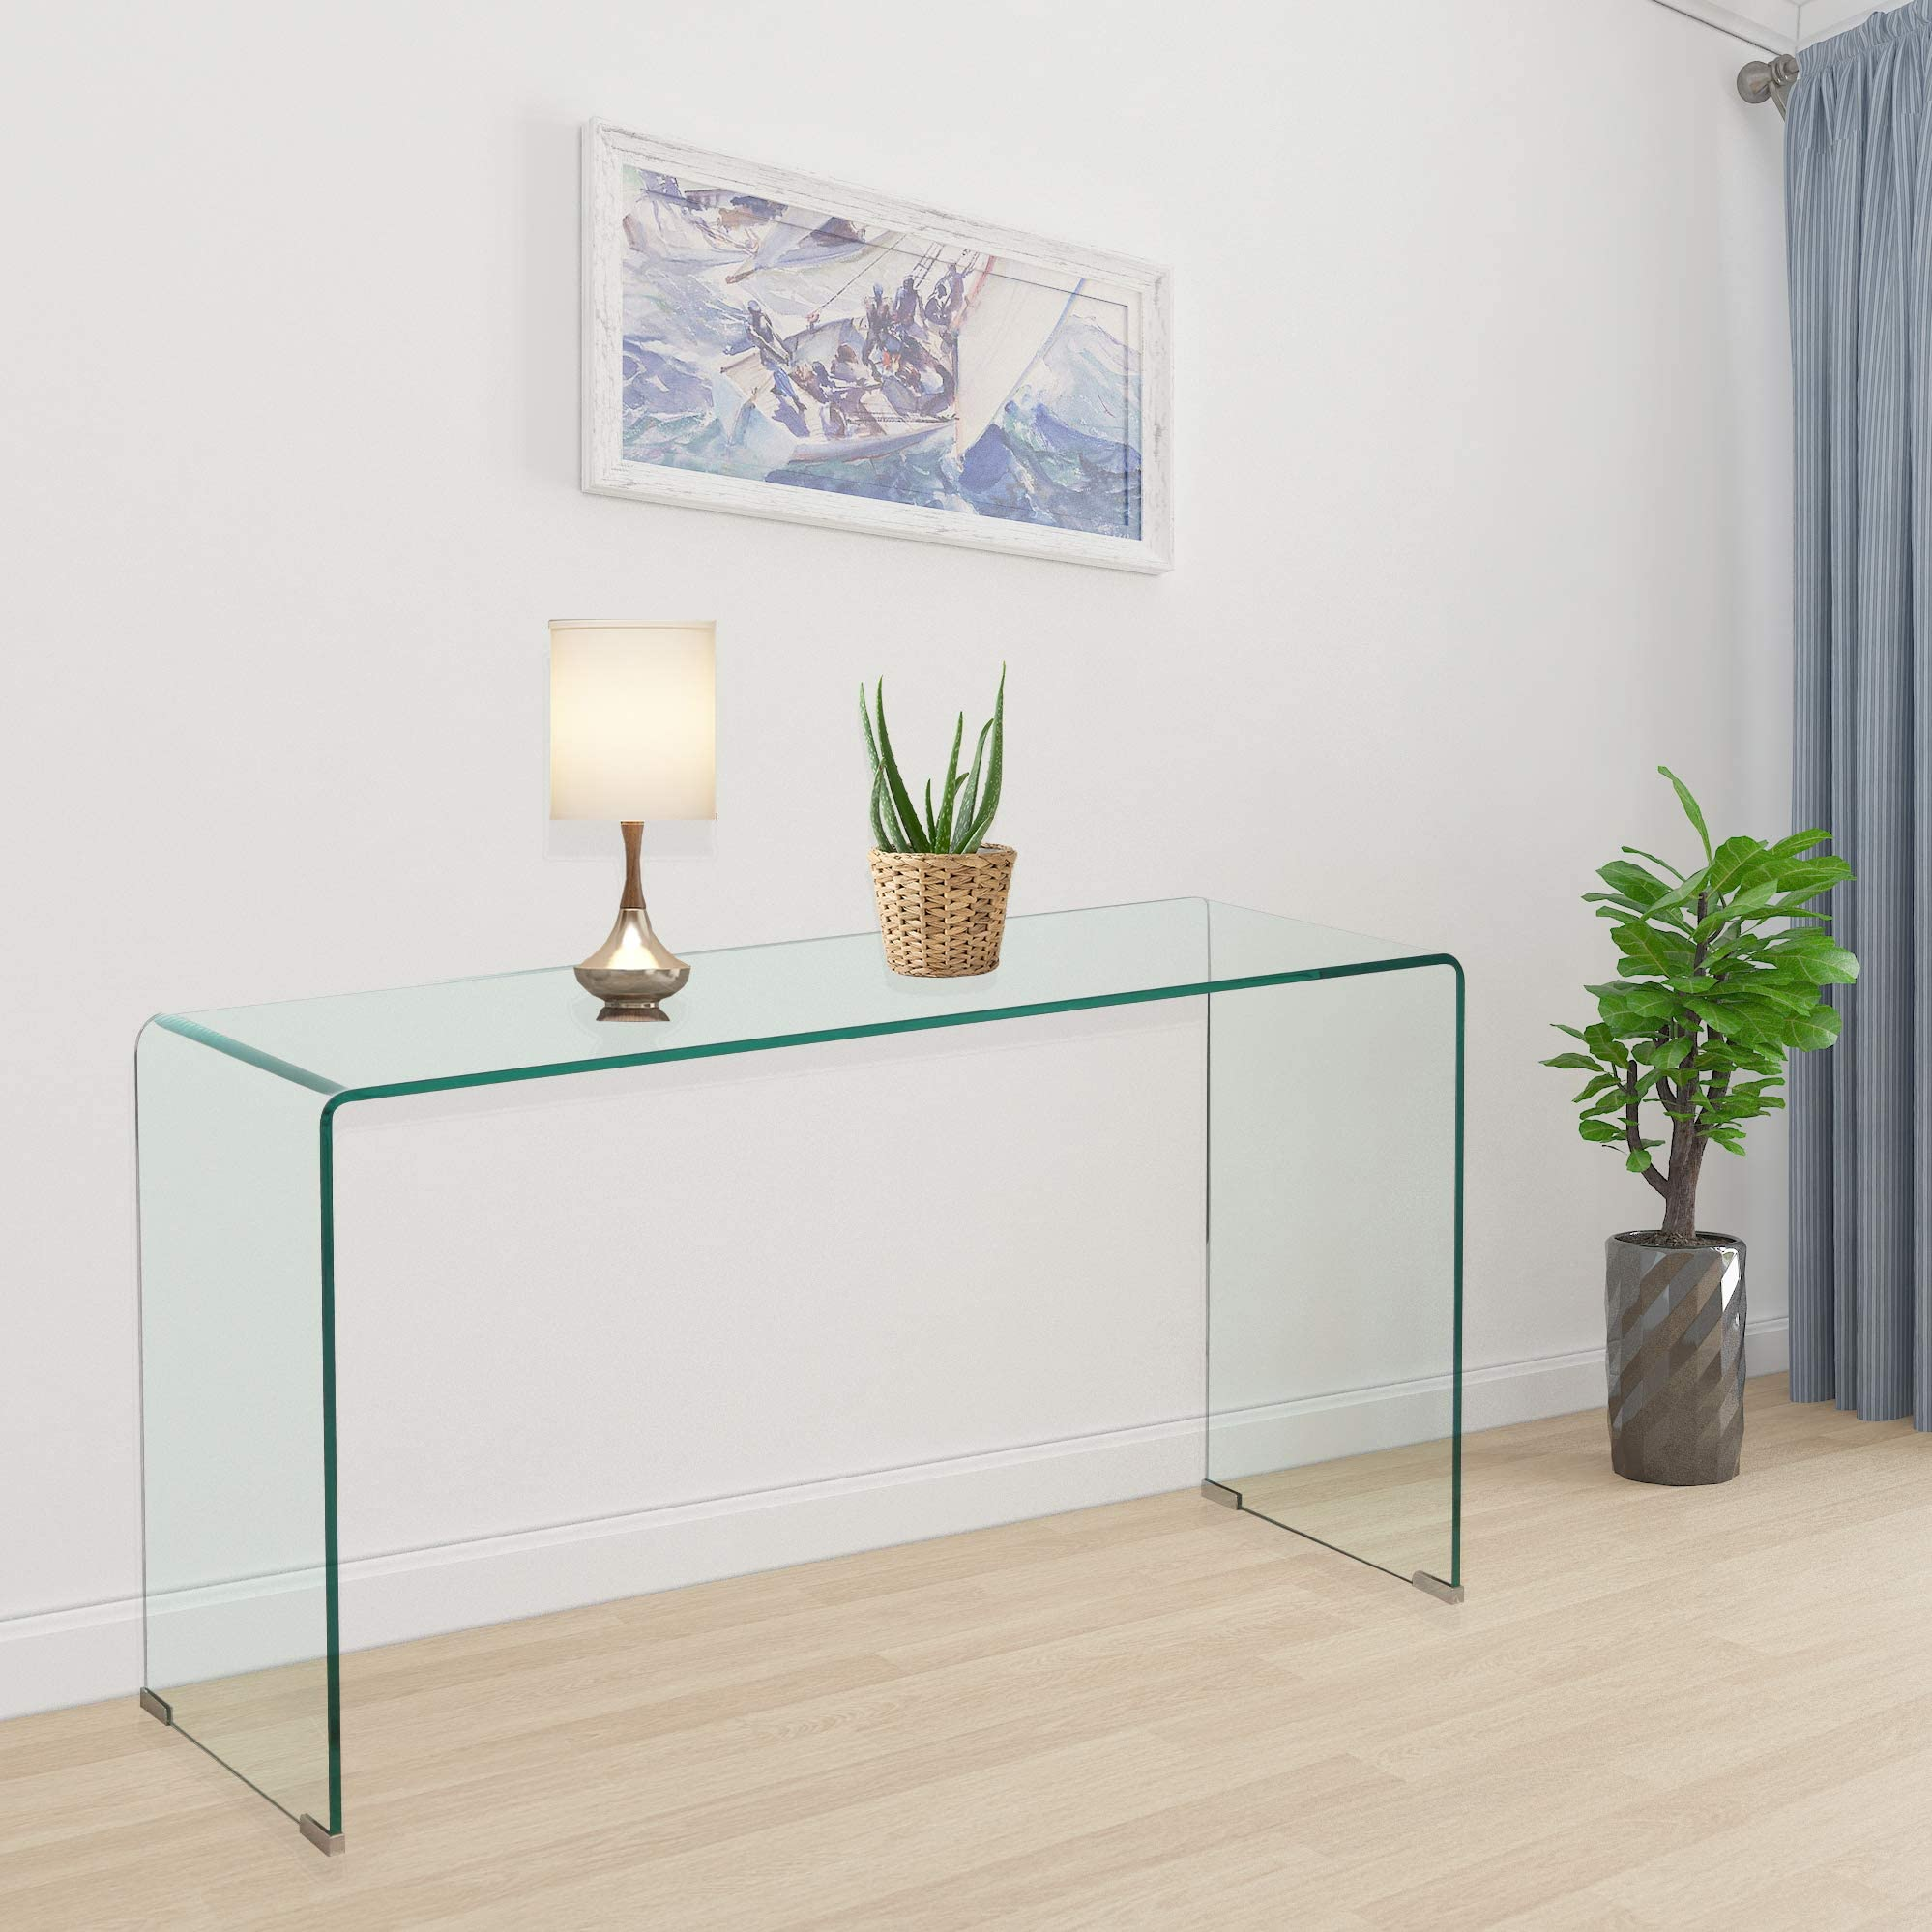 2020 Clear Glass Narrow Console Table Behind Couch Table 10 Inch Narrow Entryway Table(43.3x13.8x29.5 inch)